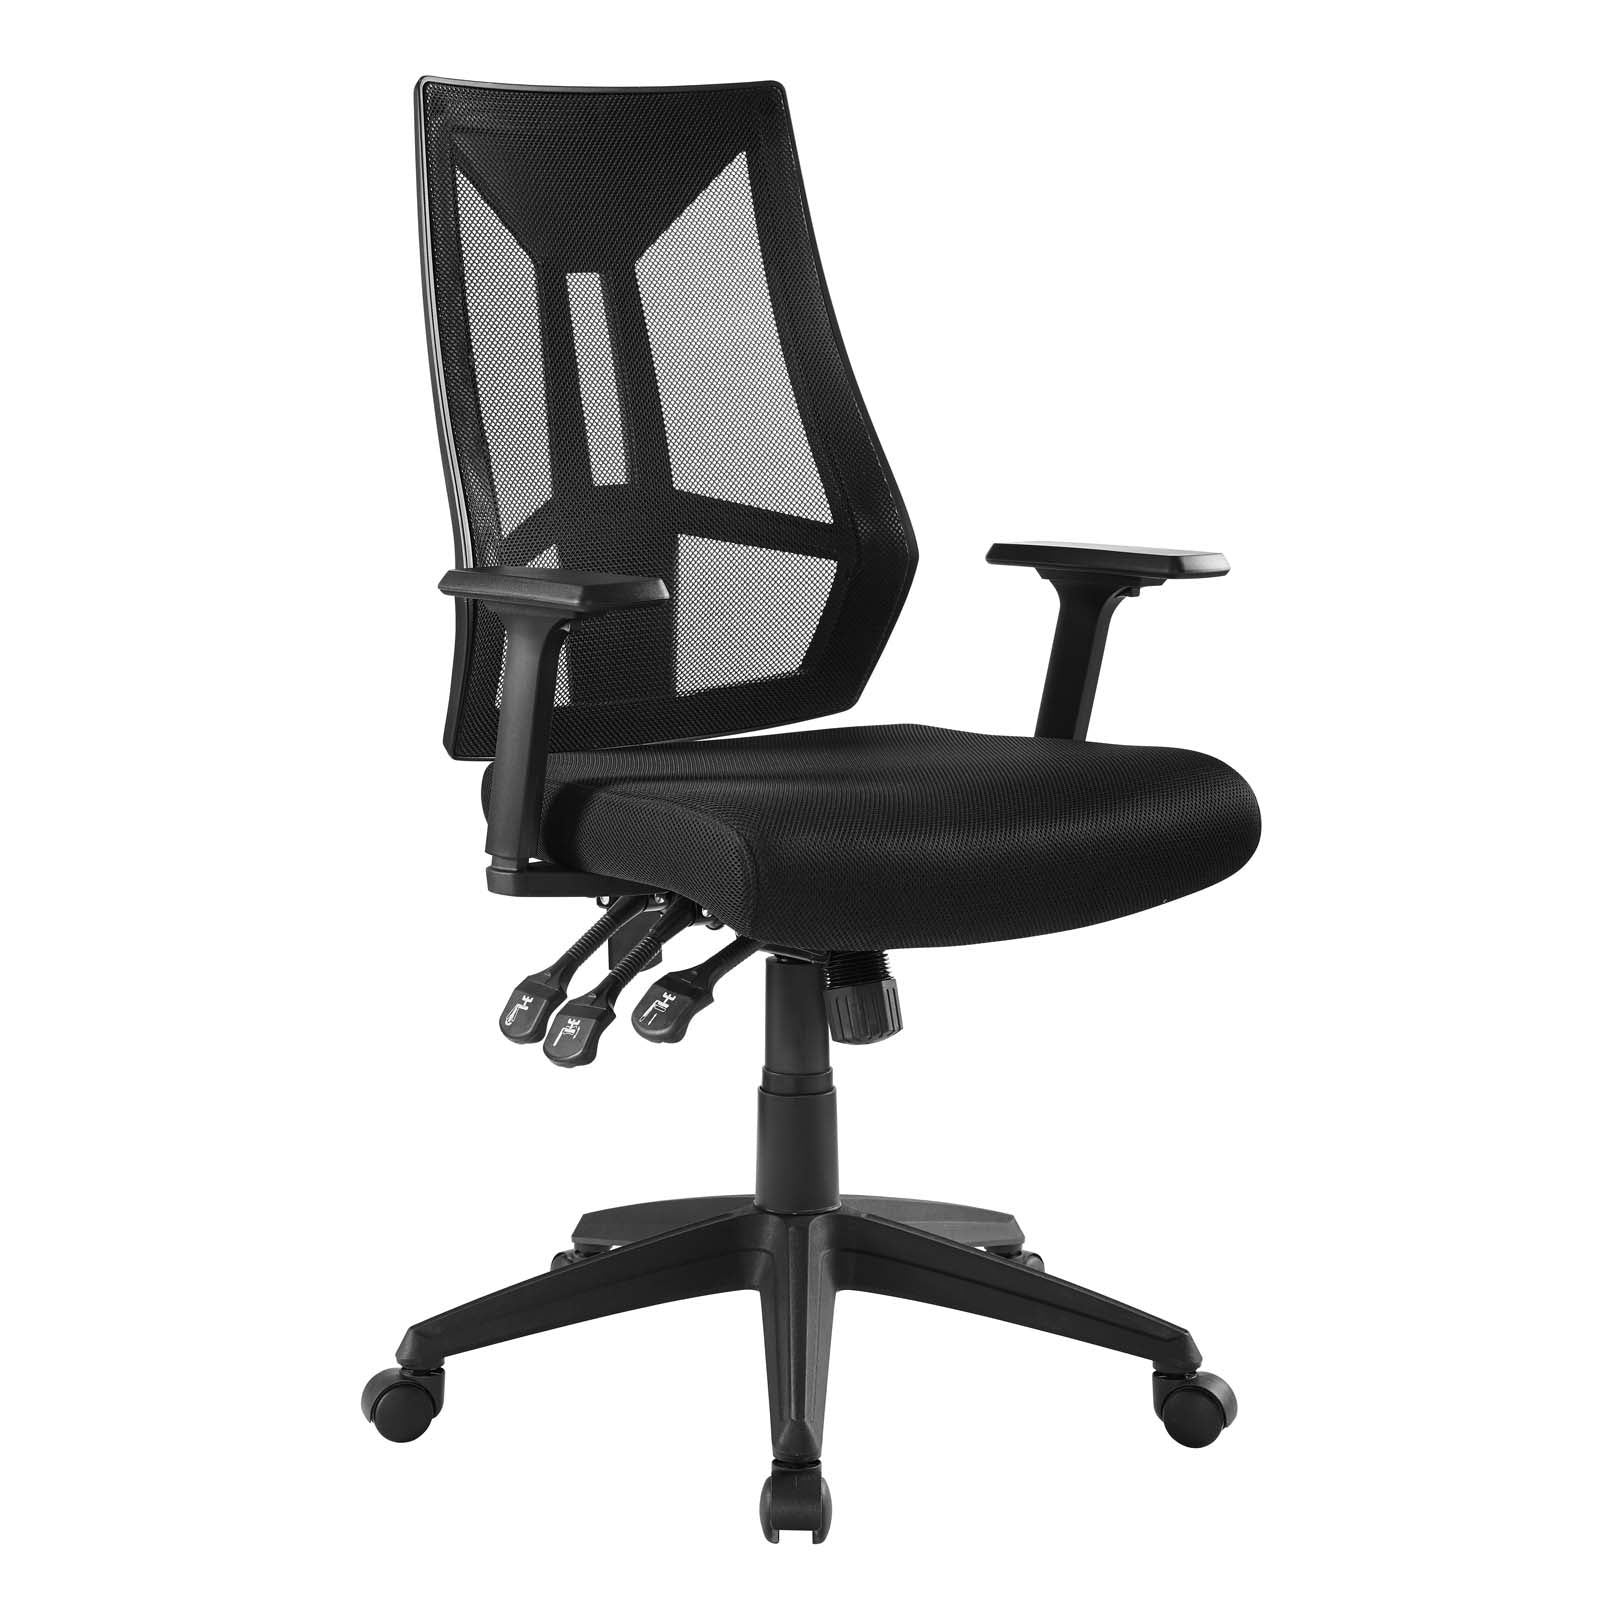 Modway Office Chairs On Sale Eei 3191 Blk Extol Mesh Office Chair Only Only 172 30 At Contemporary Furniture Warehouse